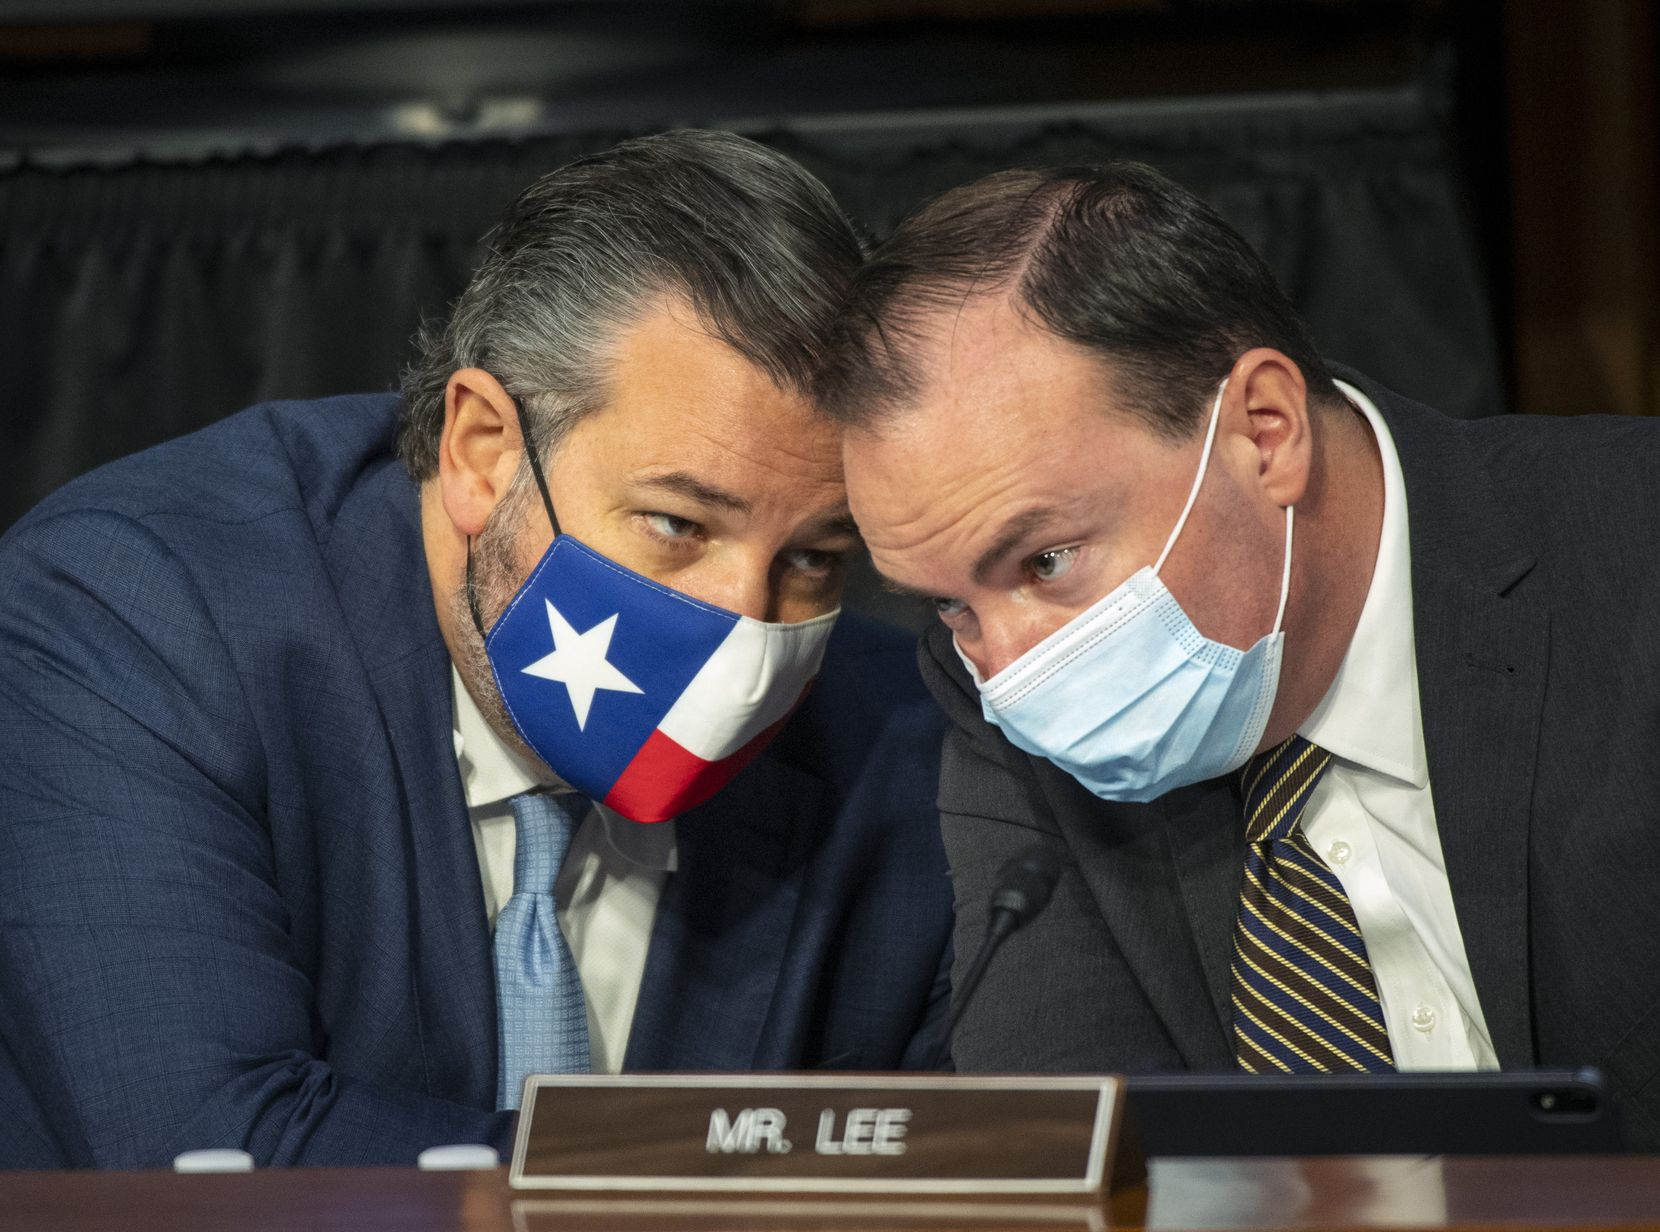 Sens. Ted Cruz of Texas and Mike Lee of Utah spoke during the fourth day of Judge Amy Coney Barrett's Supreme Court confirmation hearing, on Oct. 15, 2020.